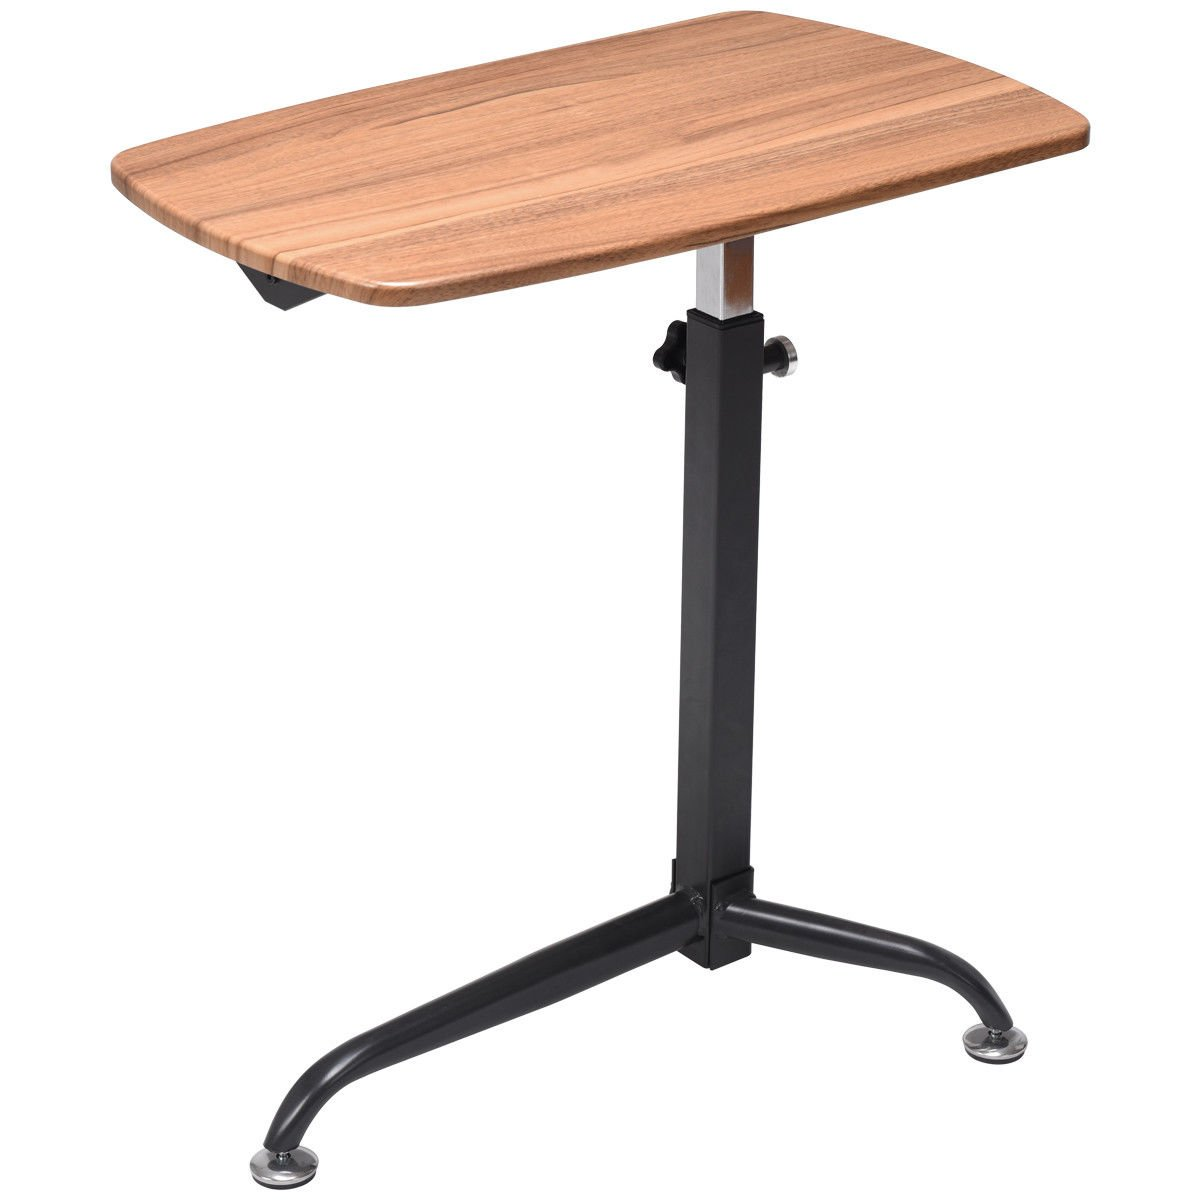 Tangkula Laptop Cart Home Rolling Over Bed Sofa Side Table Height Adjustable Wood Mobile Laptop Stand Desk Laptop Holder with Wheels (Wood)